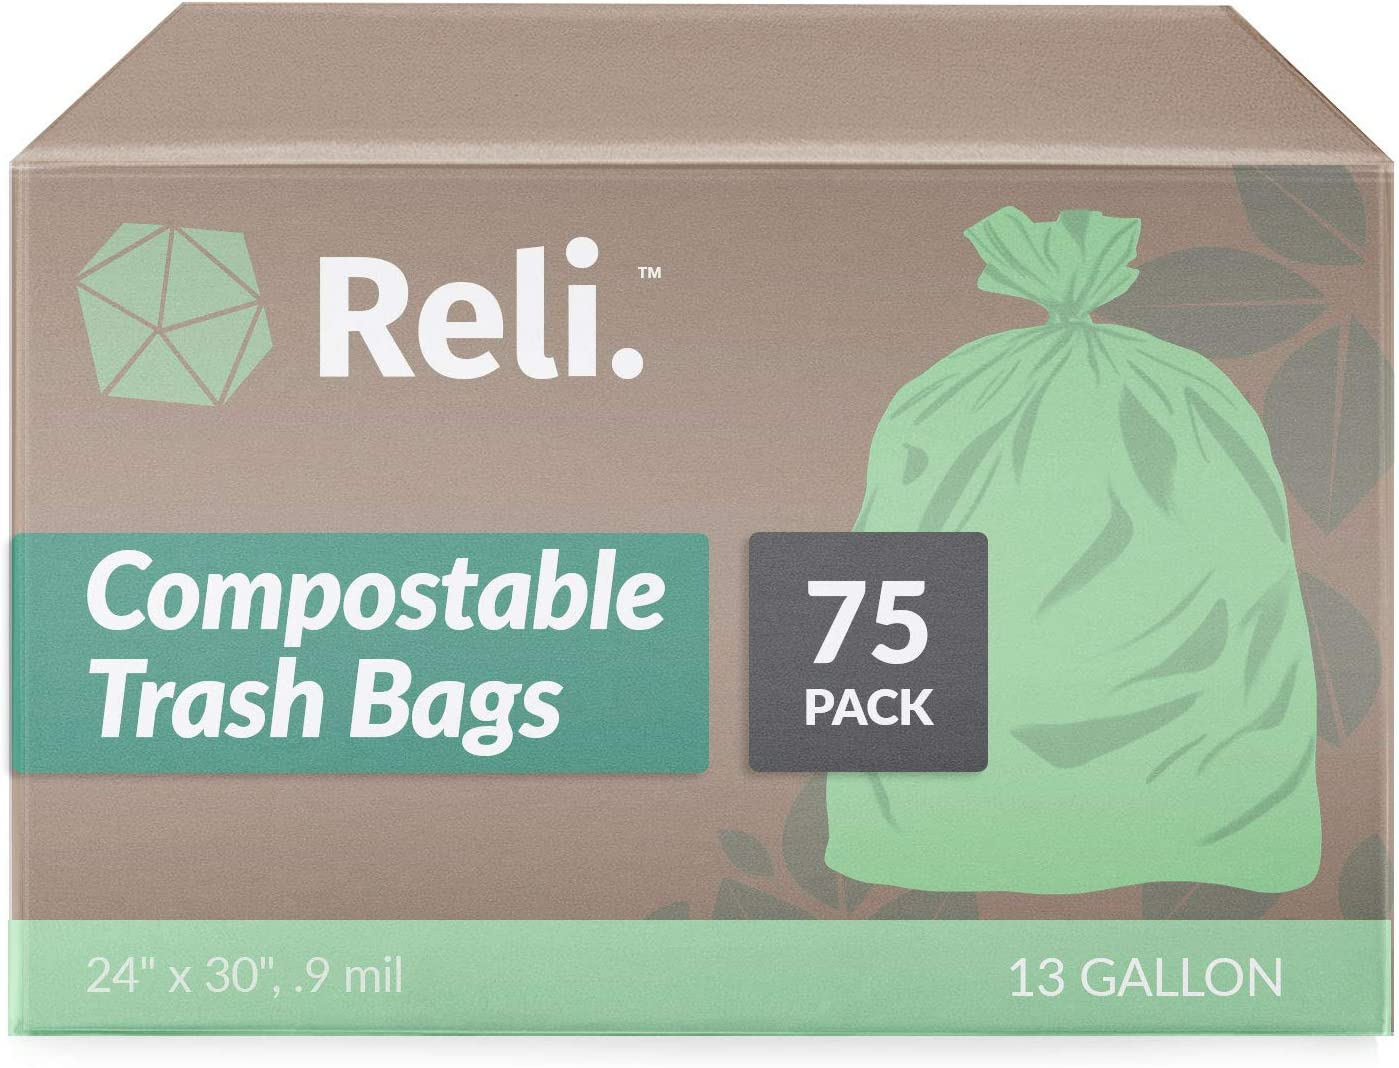 Reli. Compostable 13 Gallon Trash Bags   75 Count   ASTM D6400   Green, Compost 13 Gal Trash Bags (13 Gallon - 16 Gallon Kitchen Tall Garbage Bags) Eco-Friendly Food Waste Bags (13 Gal)